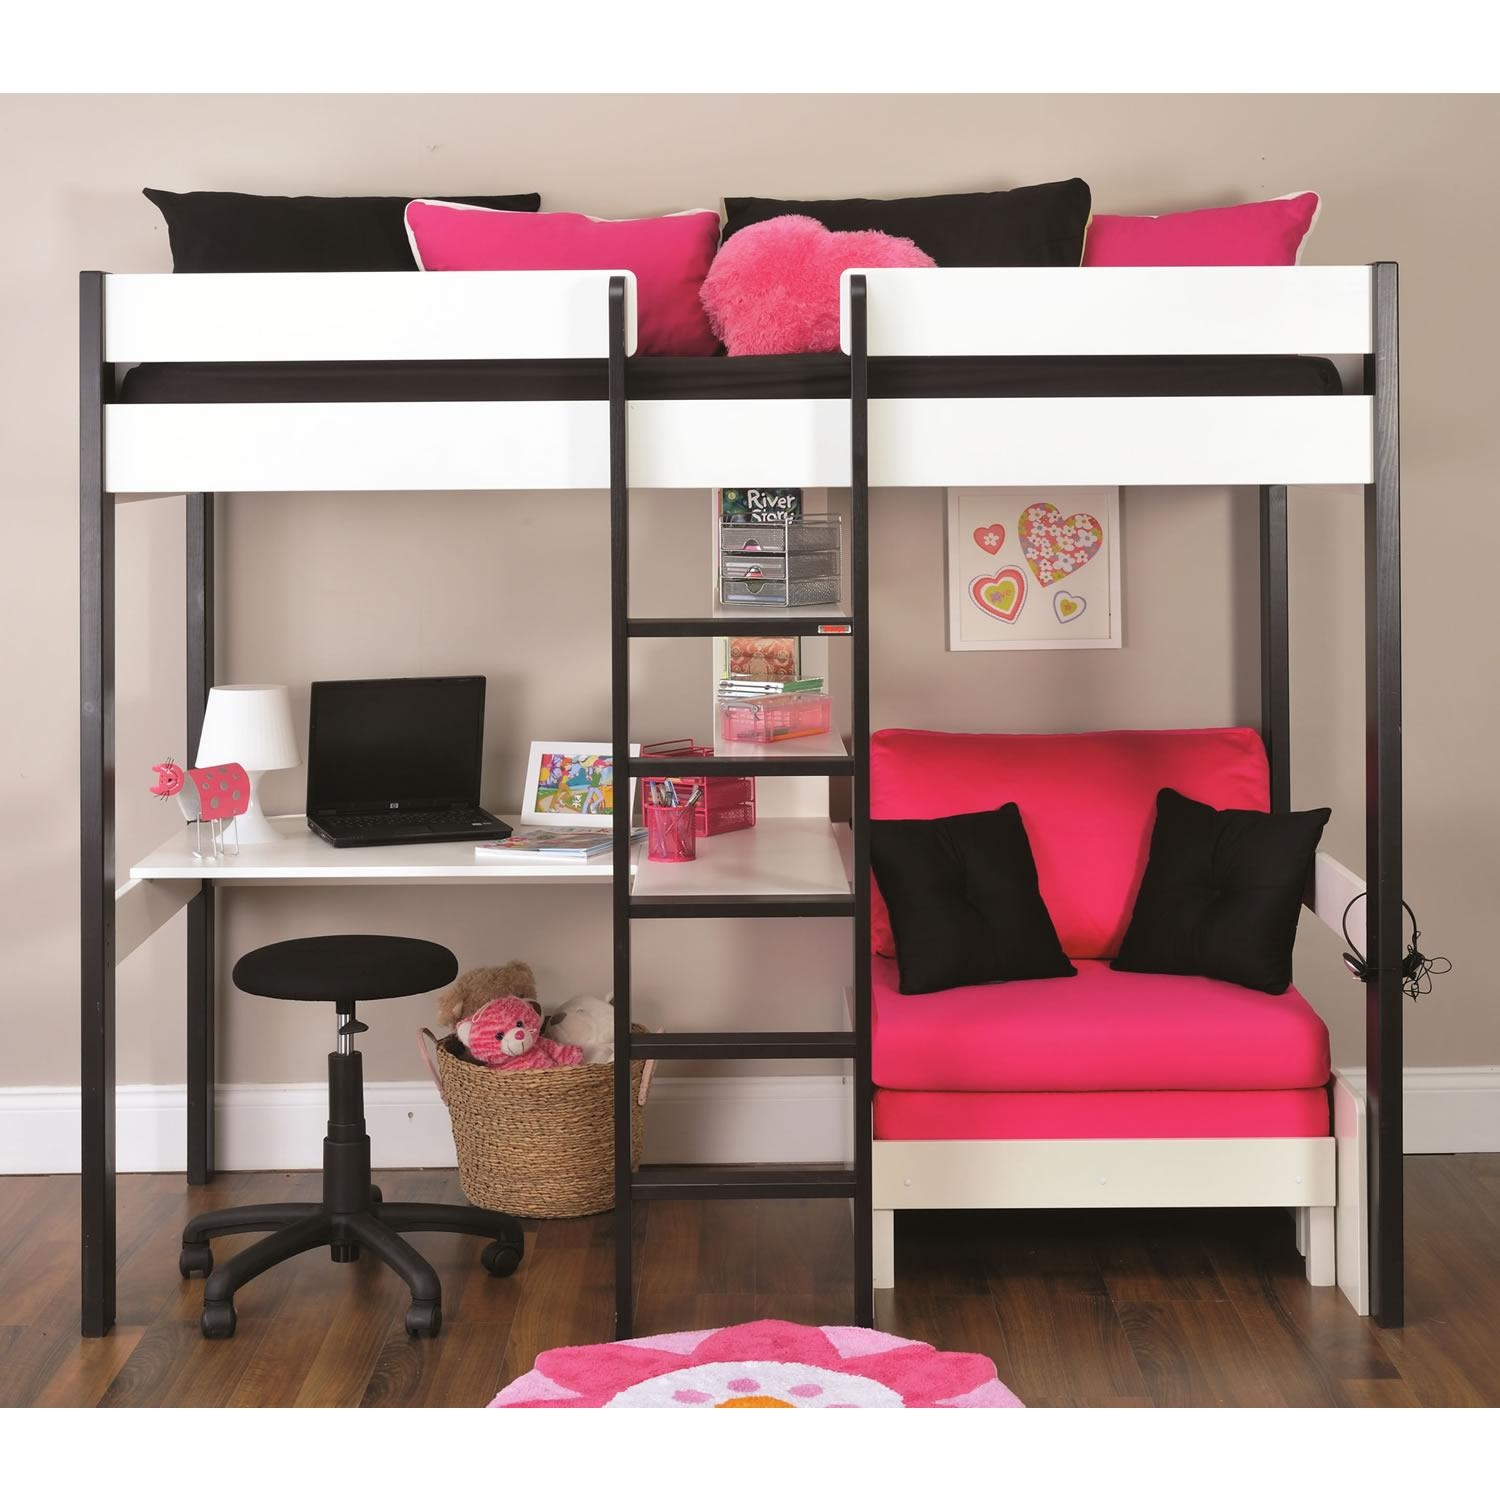 High Sleeper With Desk And Sofa Bed – Ansugallery For High Sleeper With Desk And Sofa (View 2 of 20)